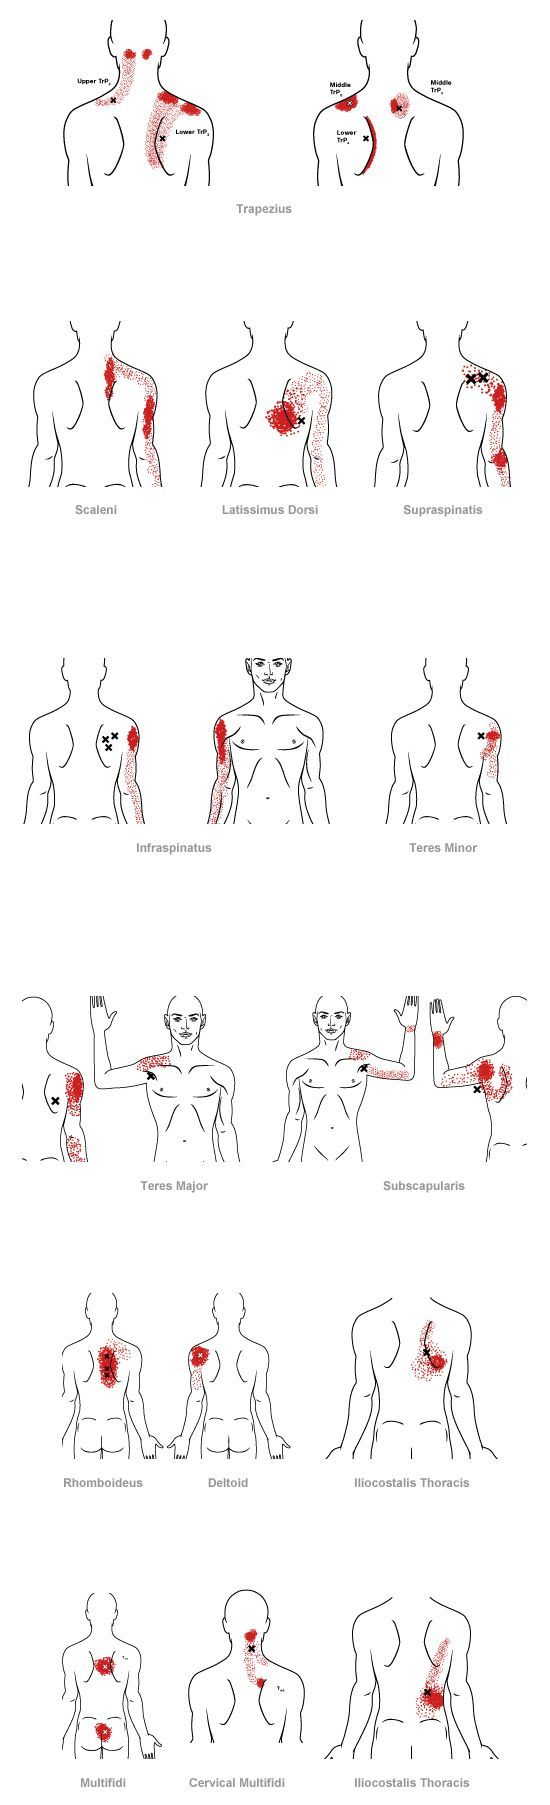 trigger point referral pain pattern for the mid back